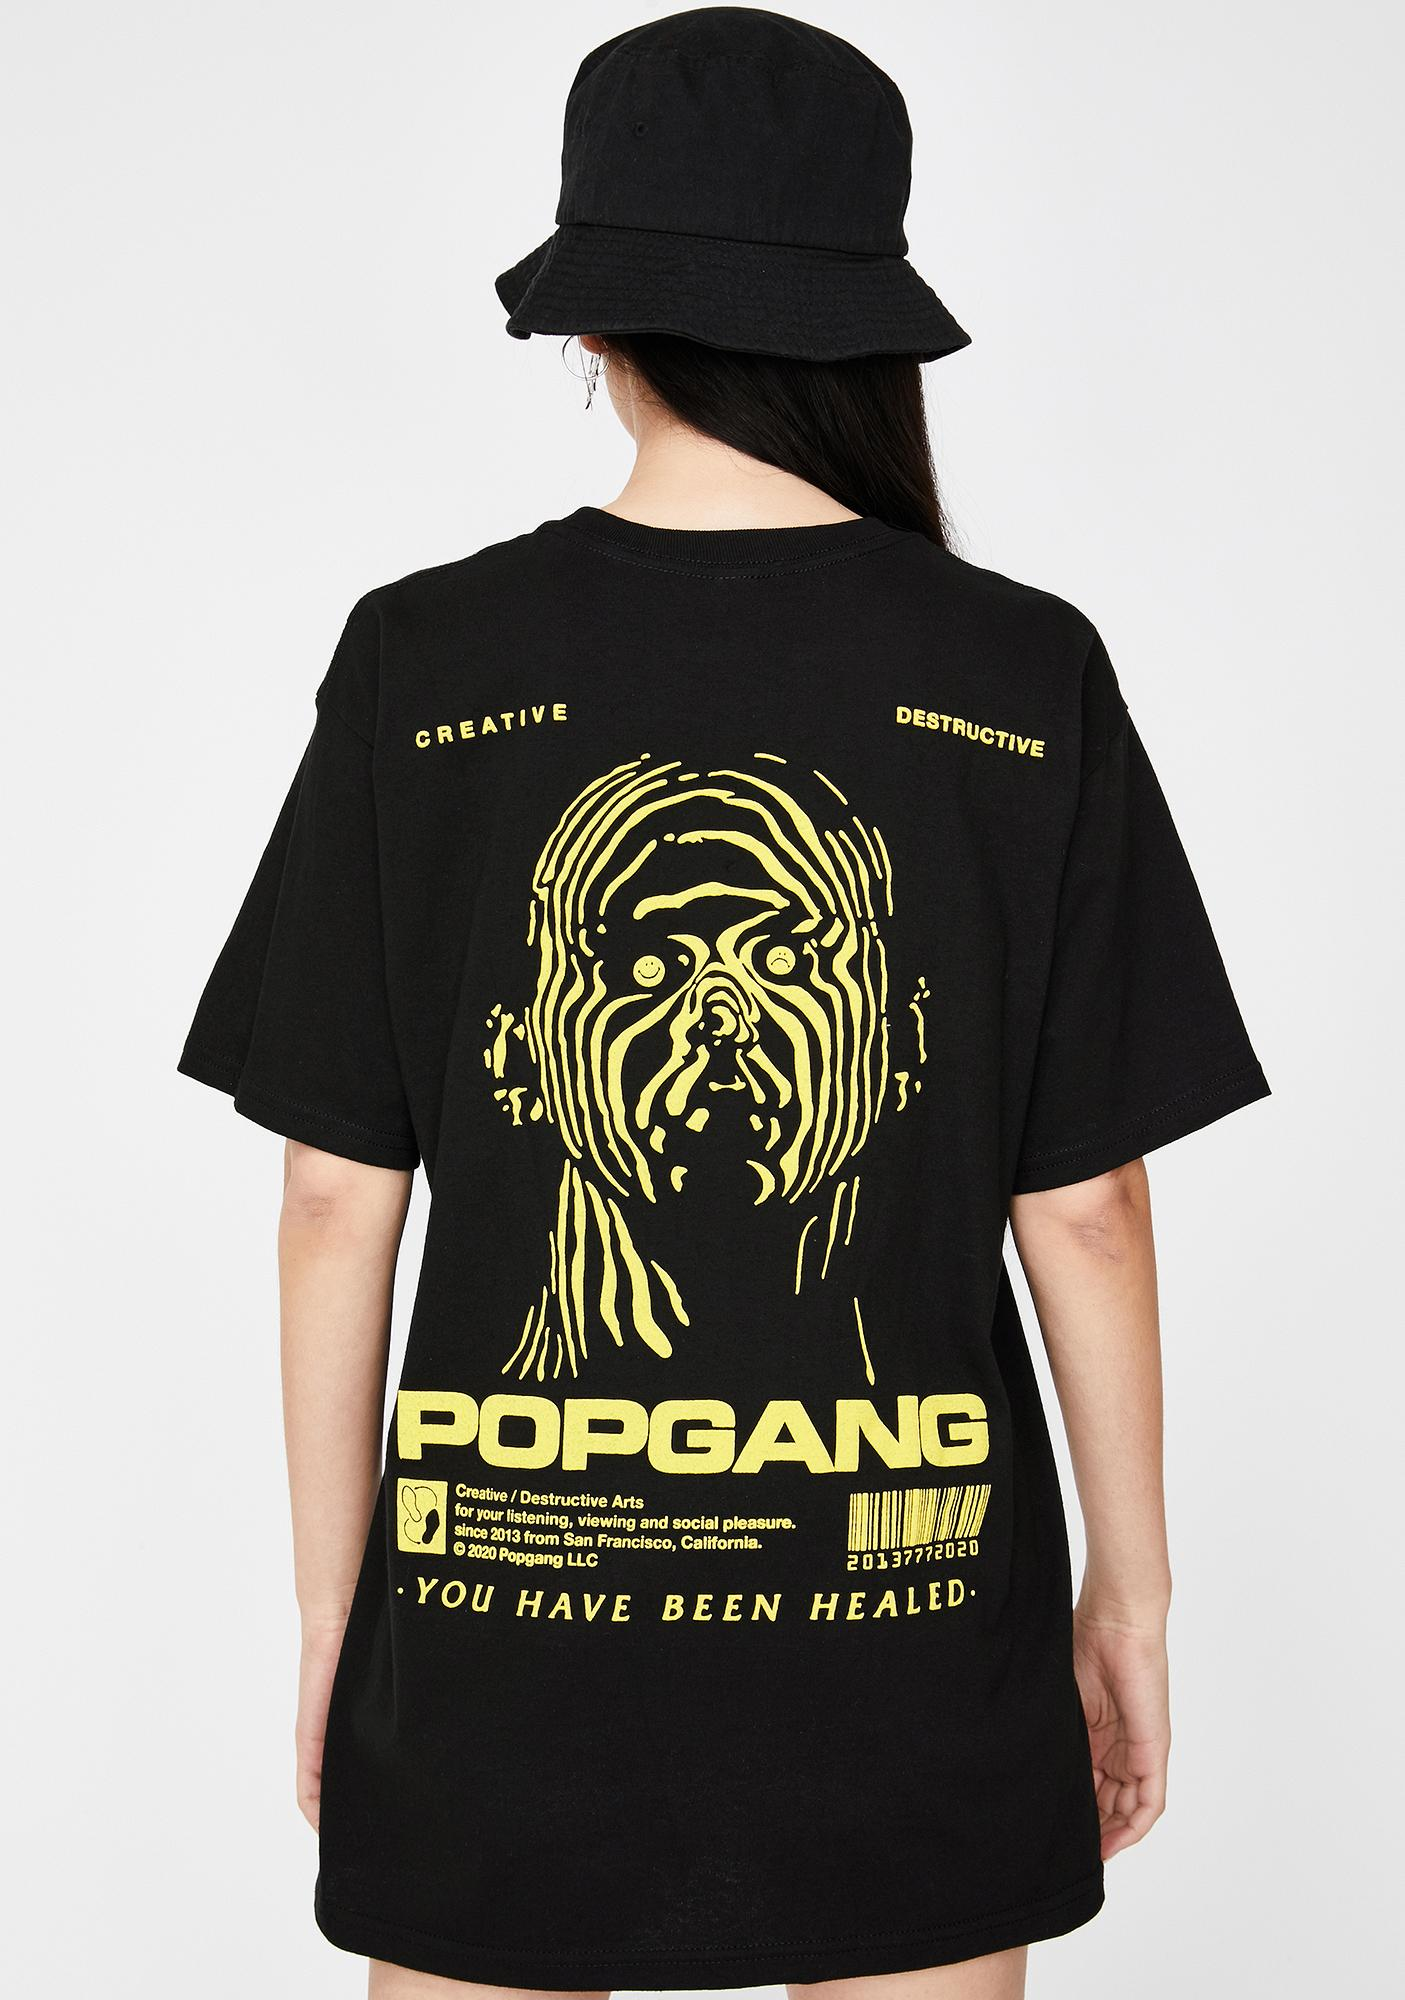 Popgang Records Popgang 2020 Graphic Tee